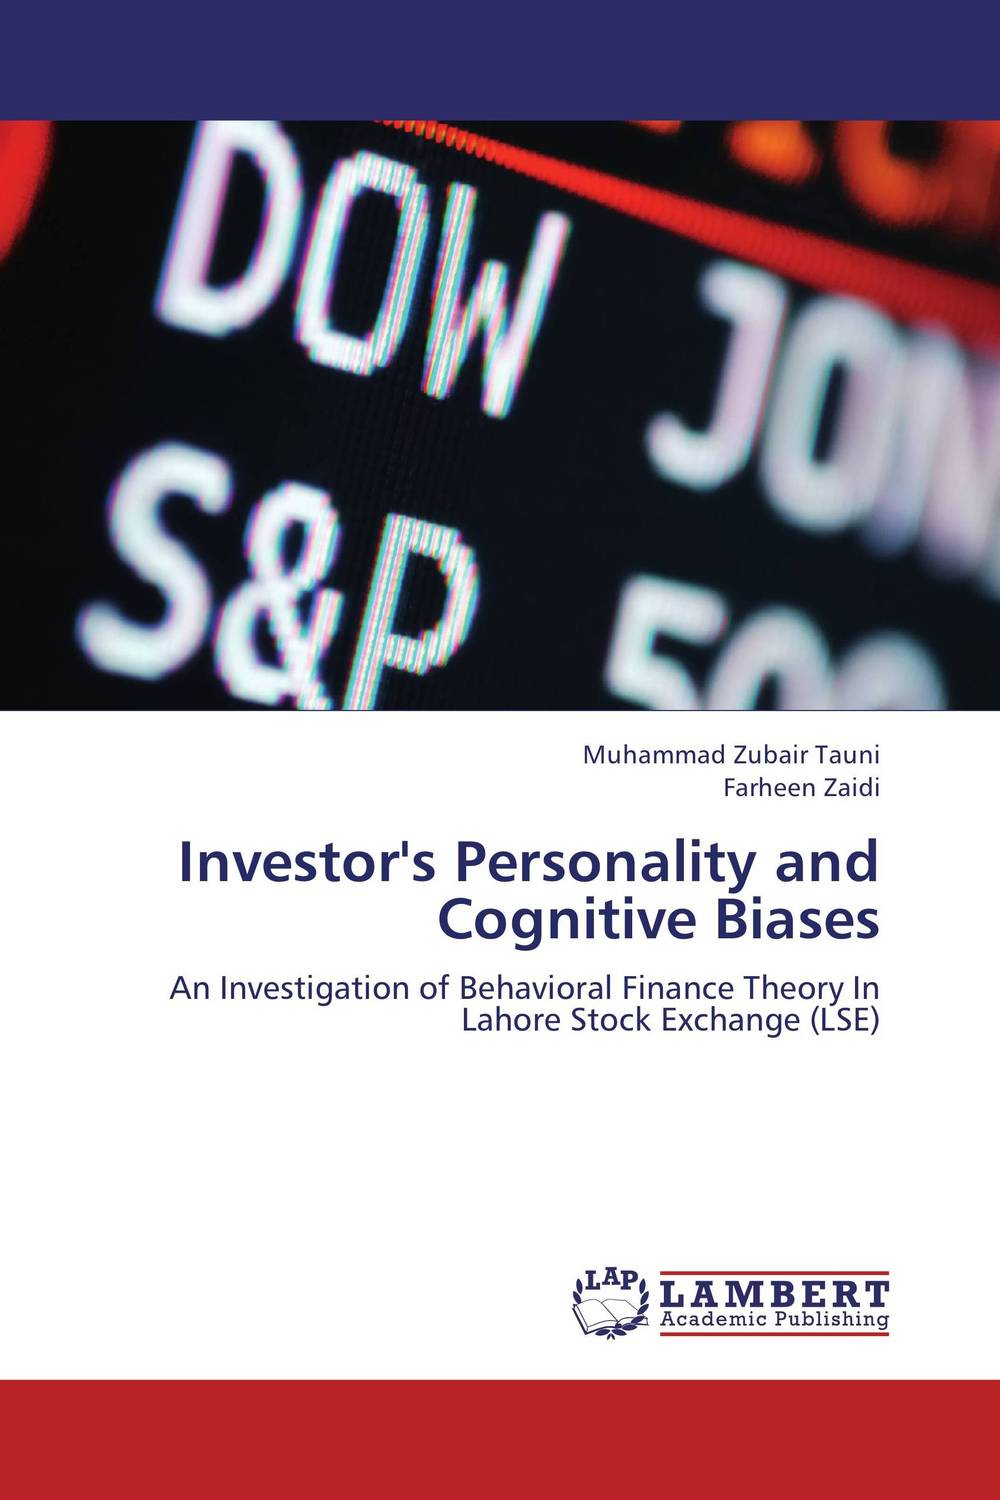 Фото Investor's Personality and Cognitive Biases finance and investments